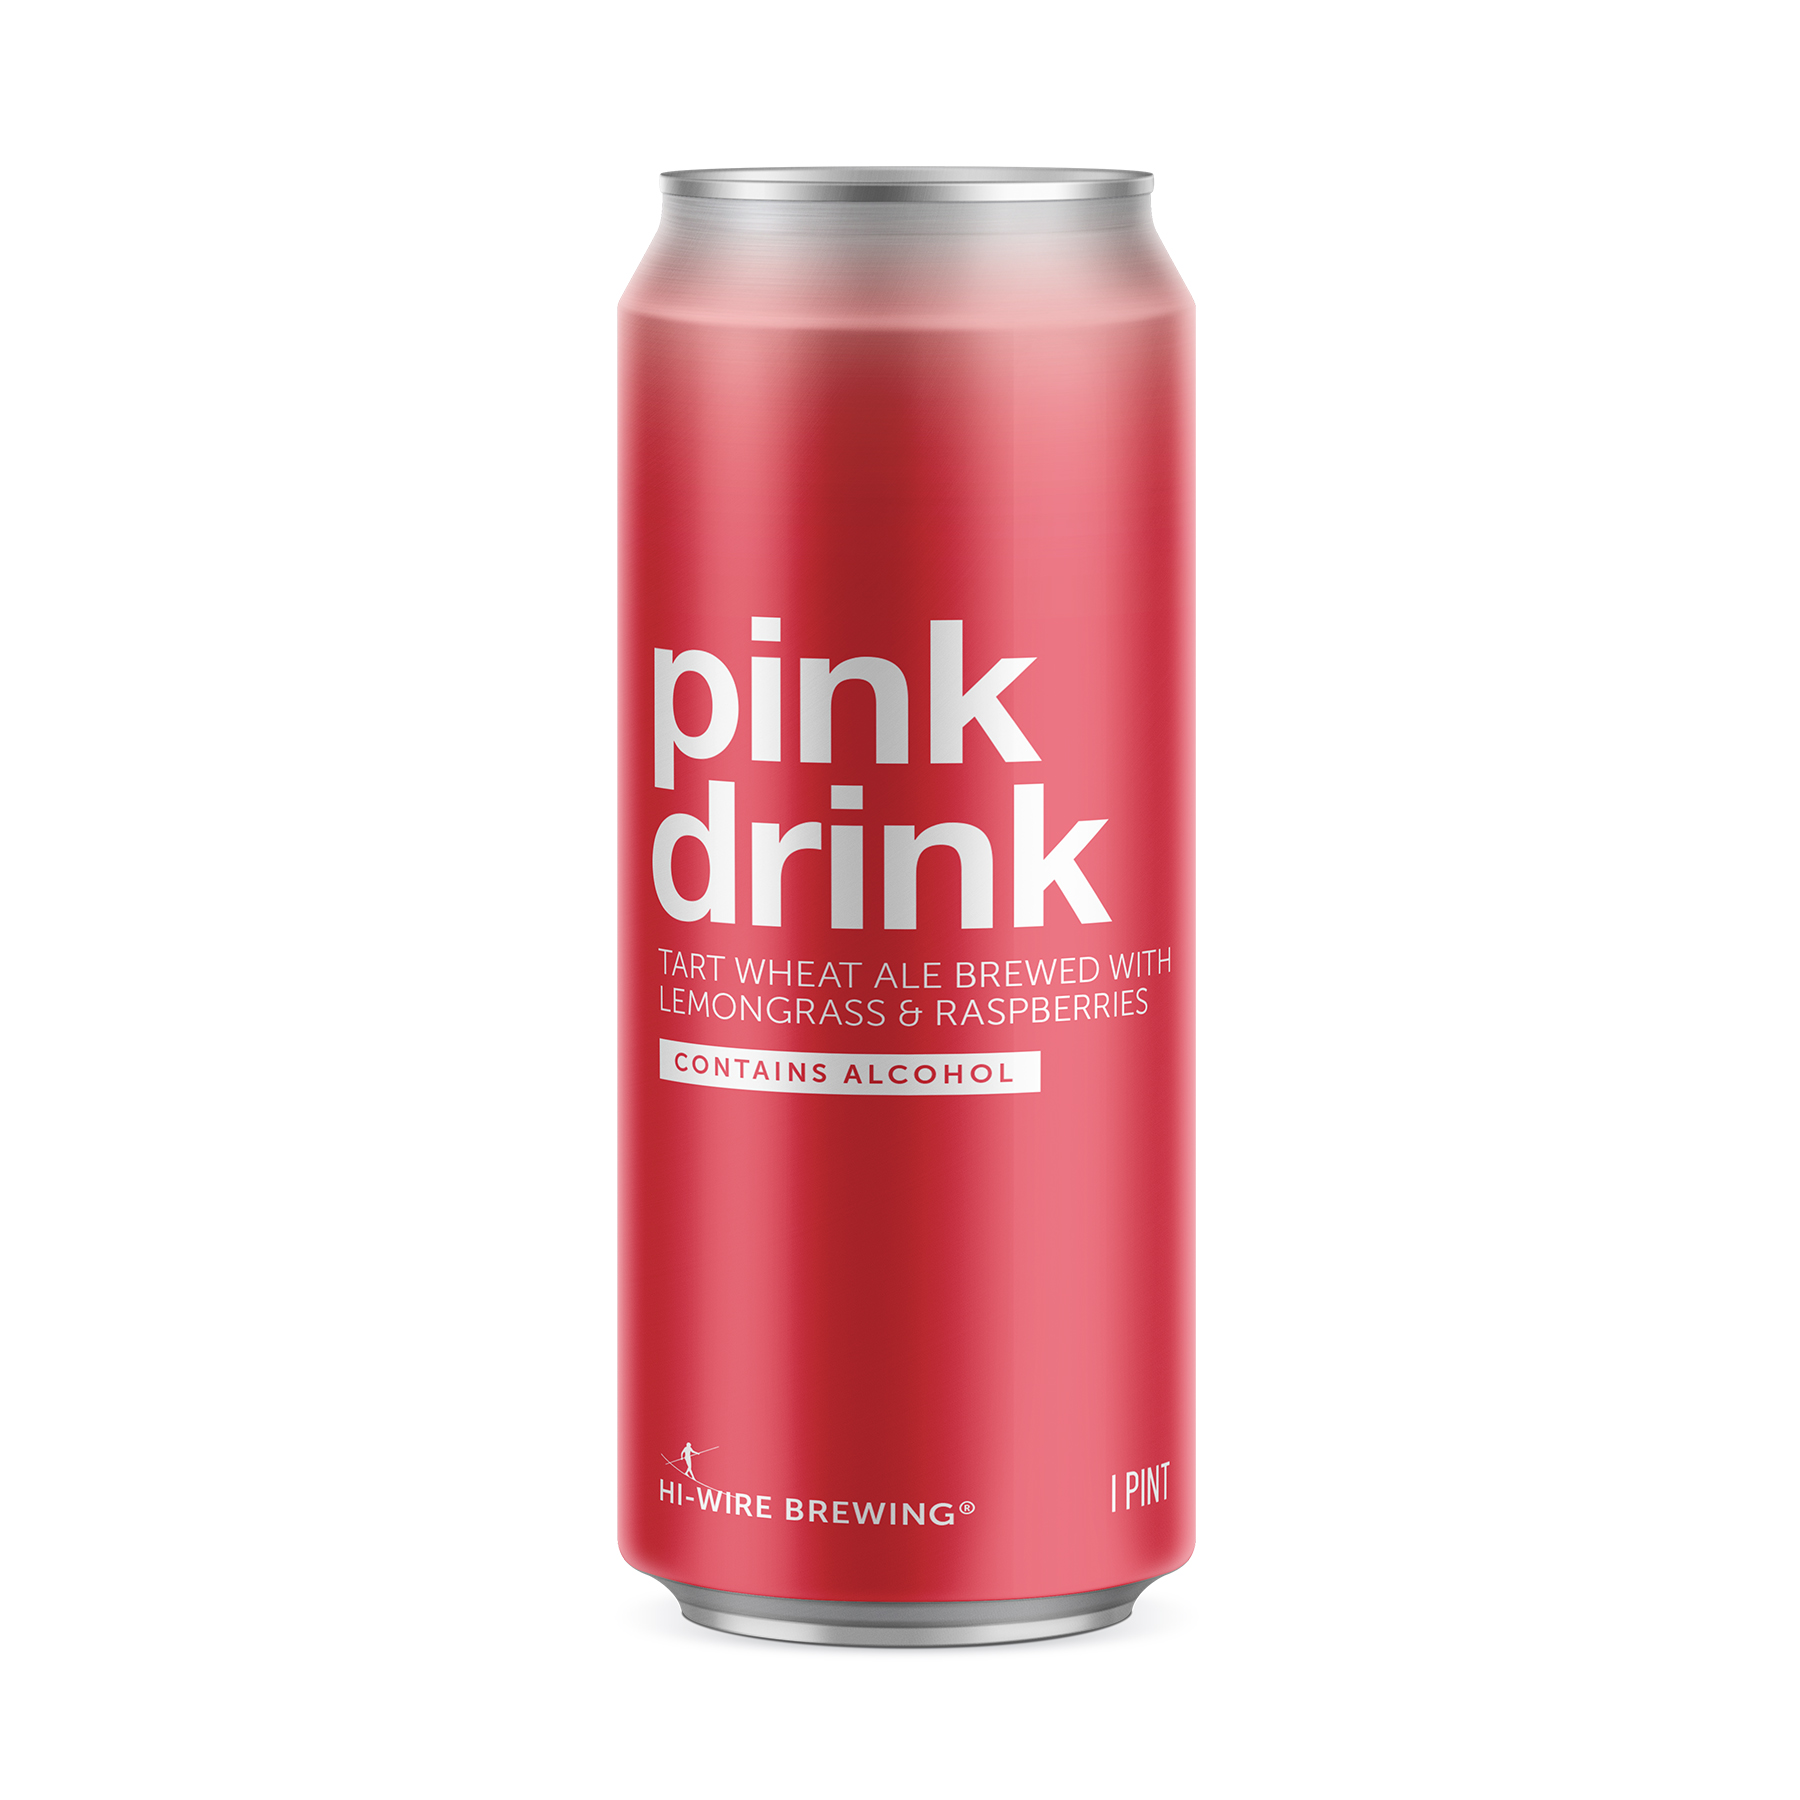 PINK DRINK is here! - Hi-Wire Brewing